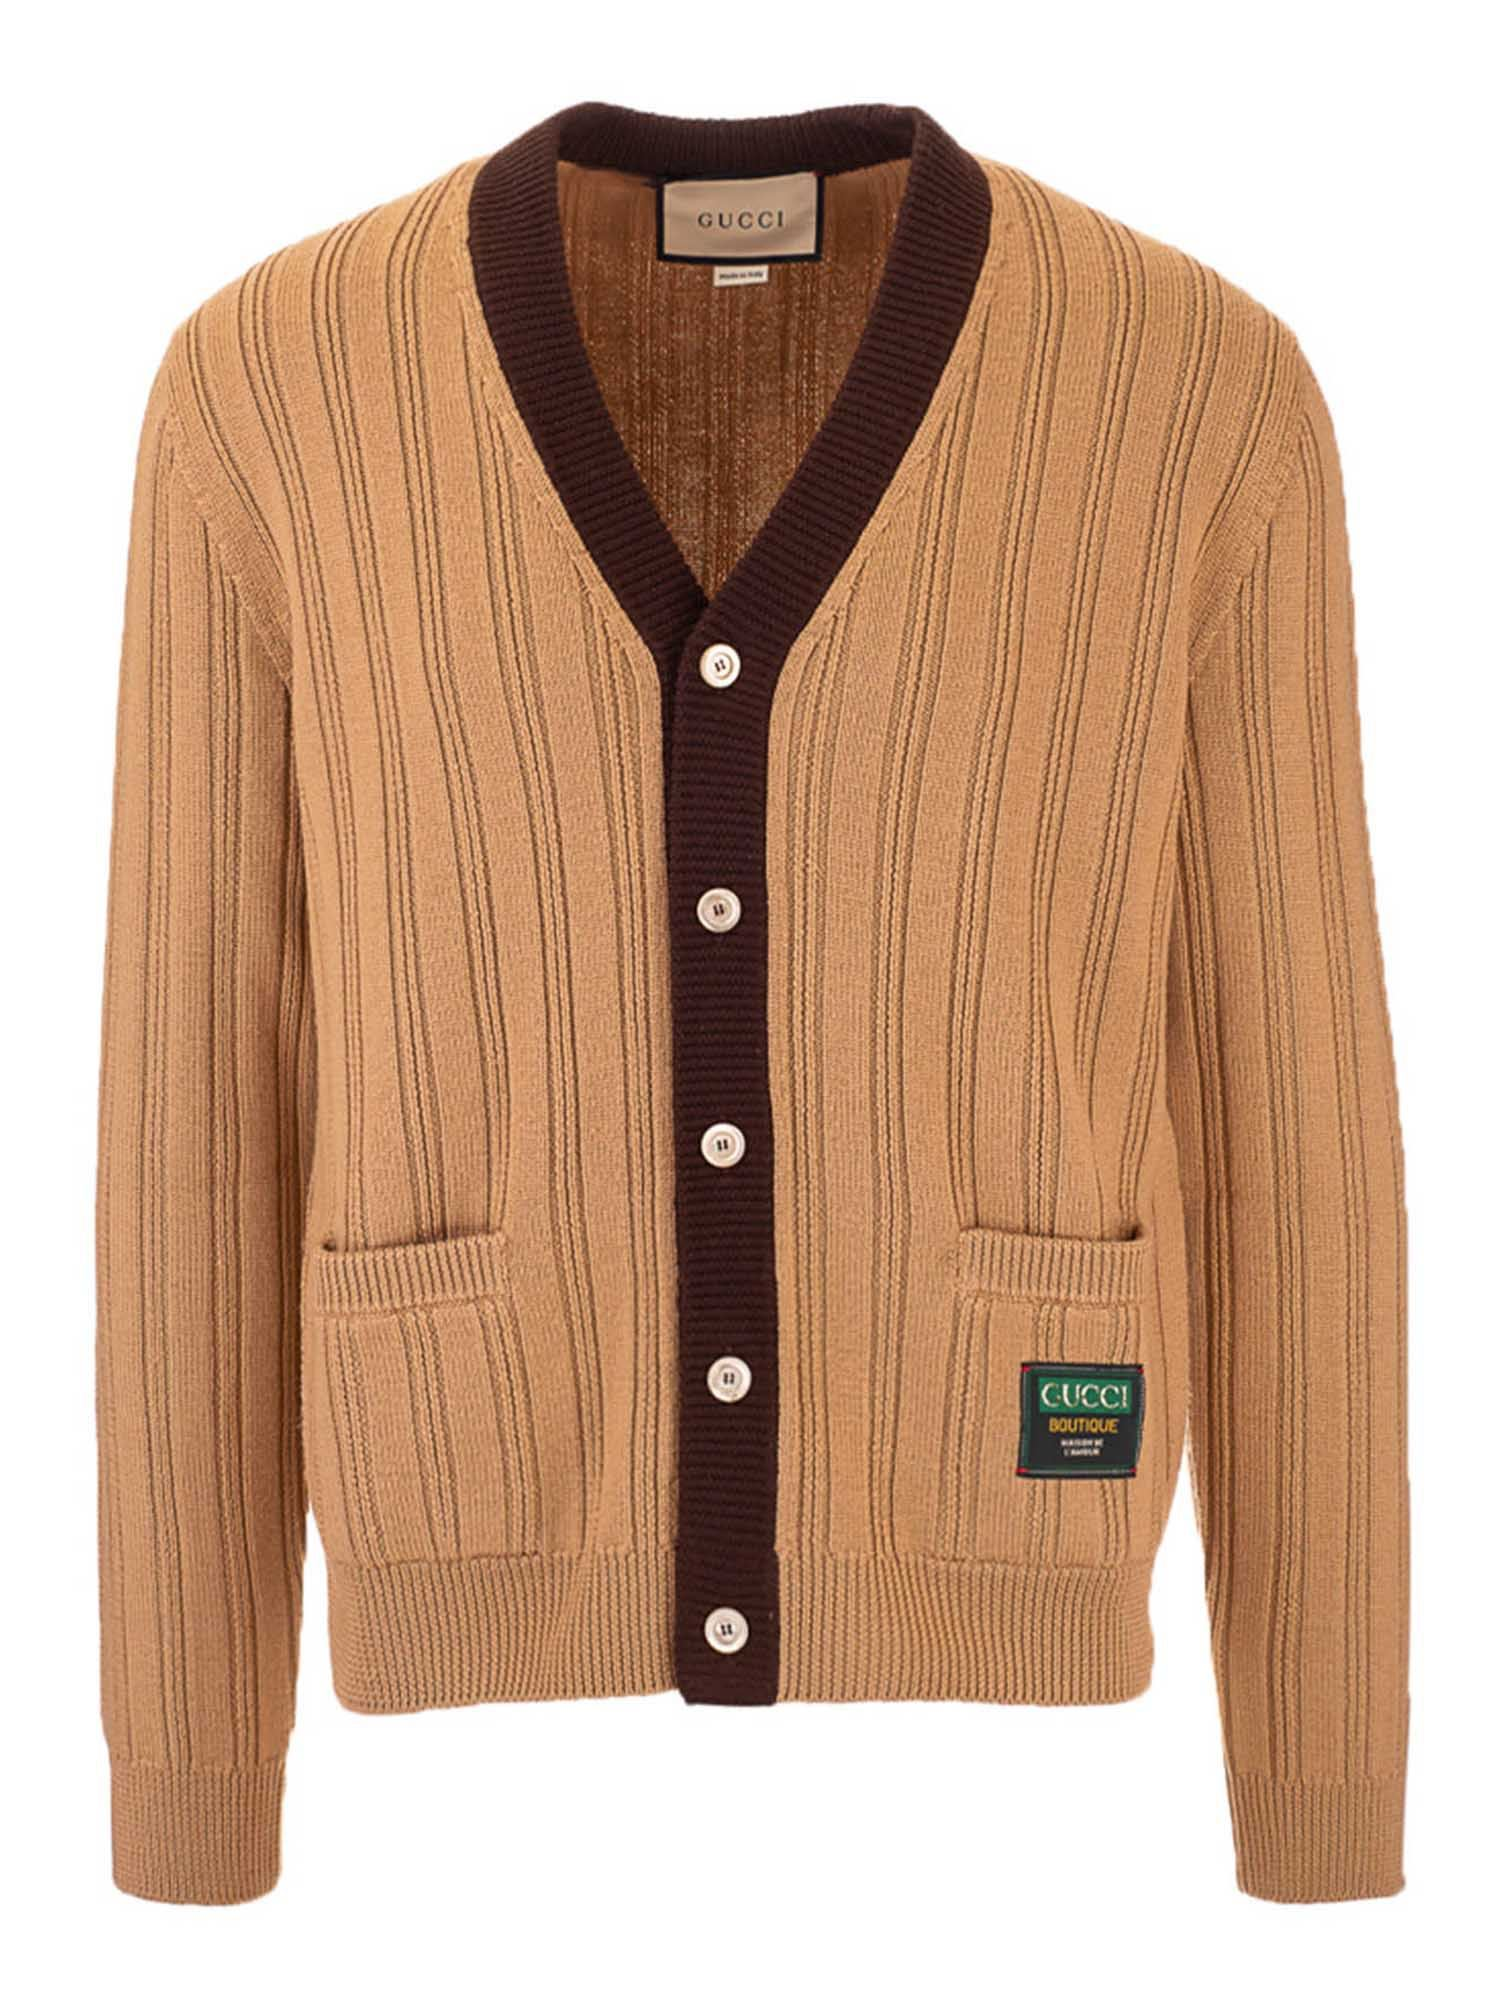 Gucci Cardigans RIBBED CARDIGAN IN CAMEL COLOR